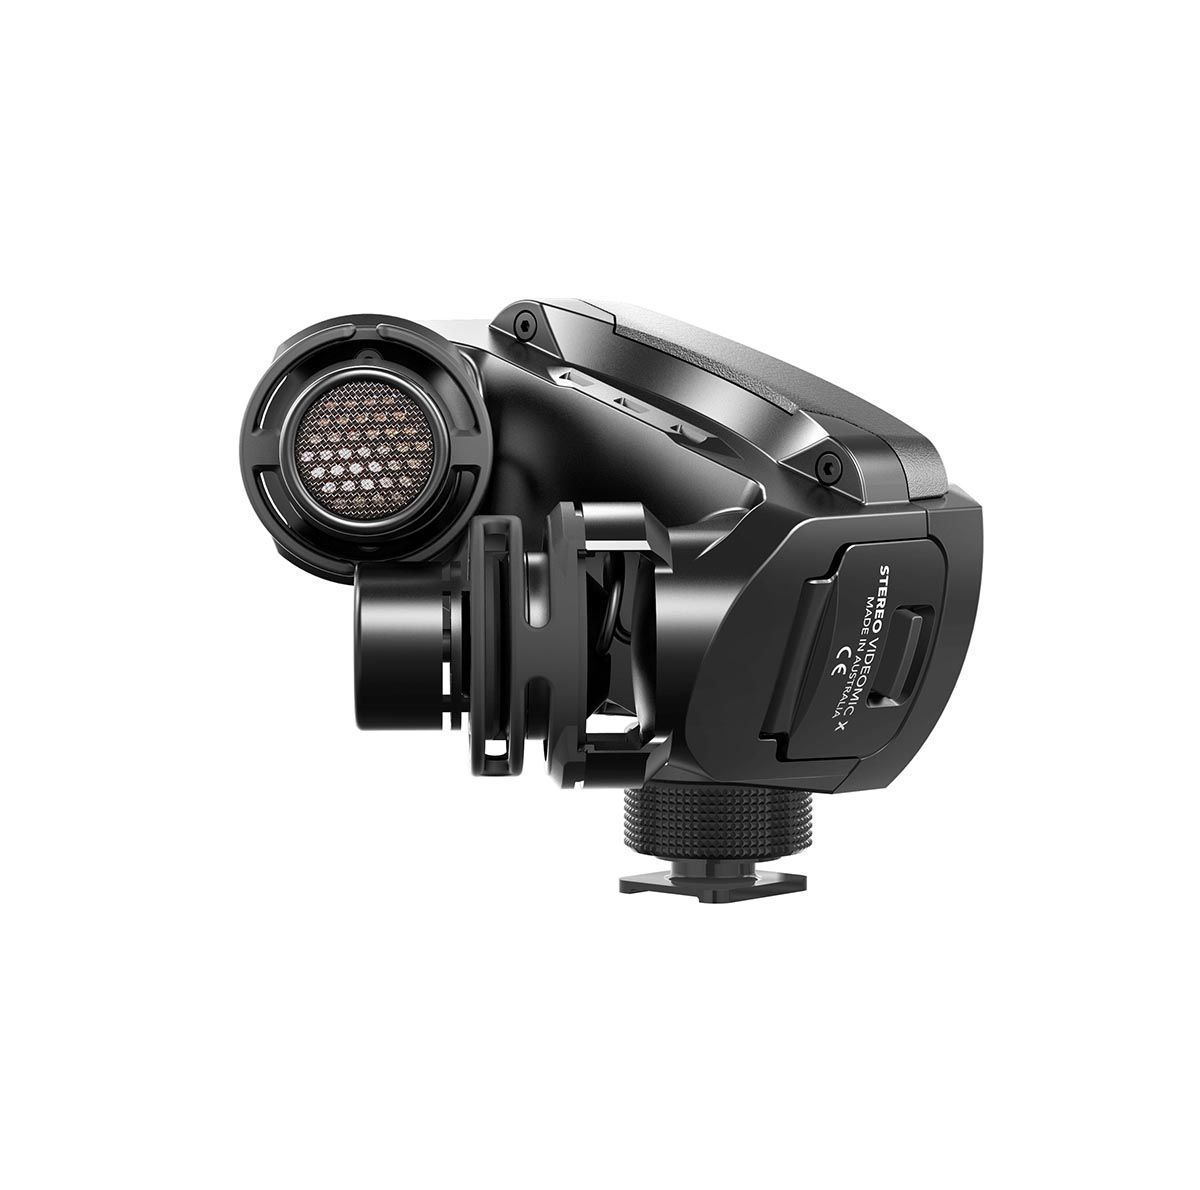 Microfone estéreo X Y p/ broadcast Rode Stereo VideoMic X